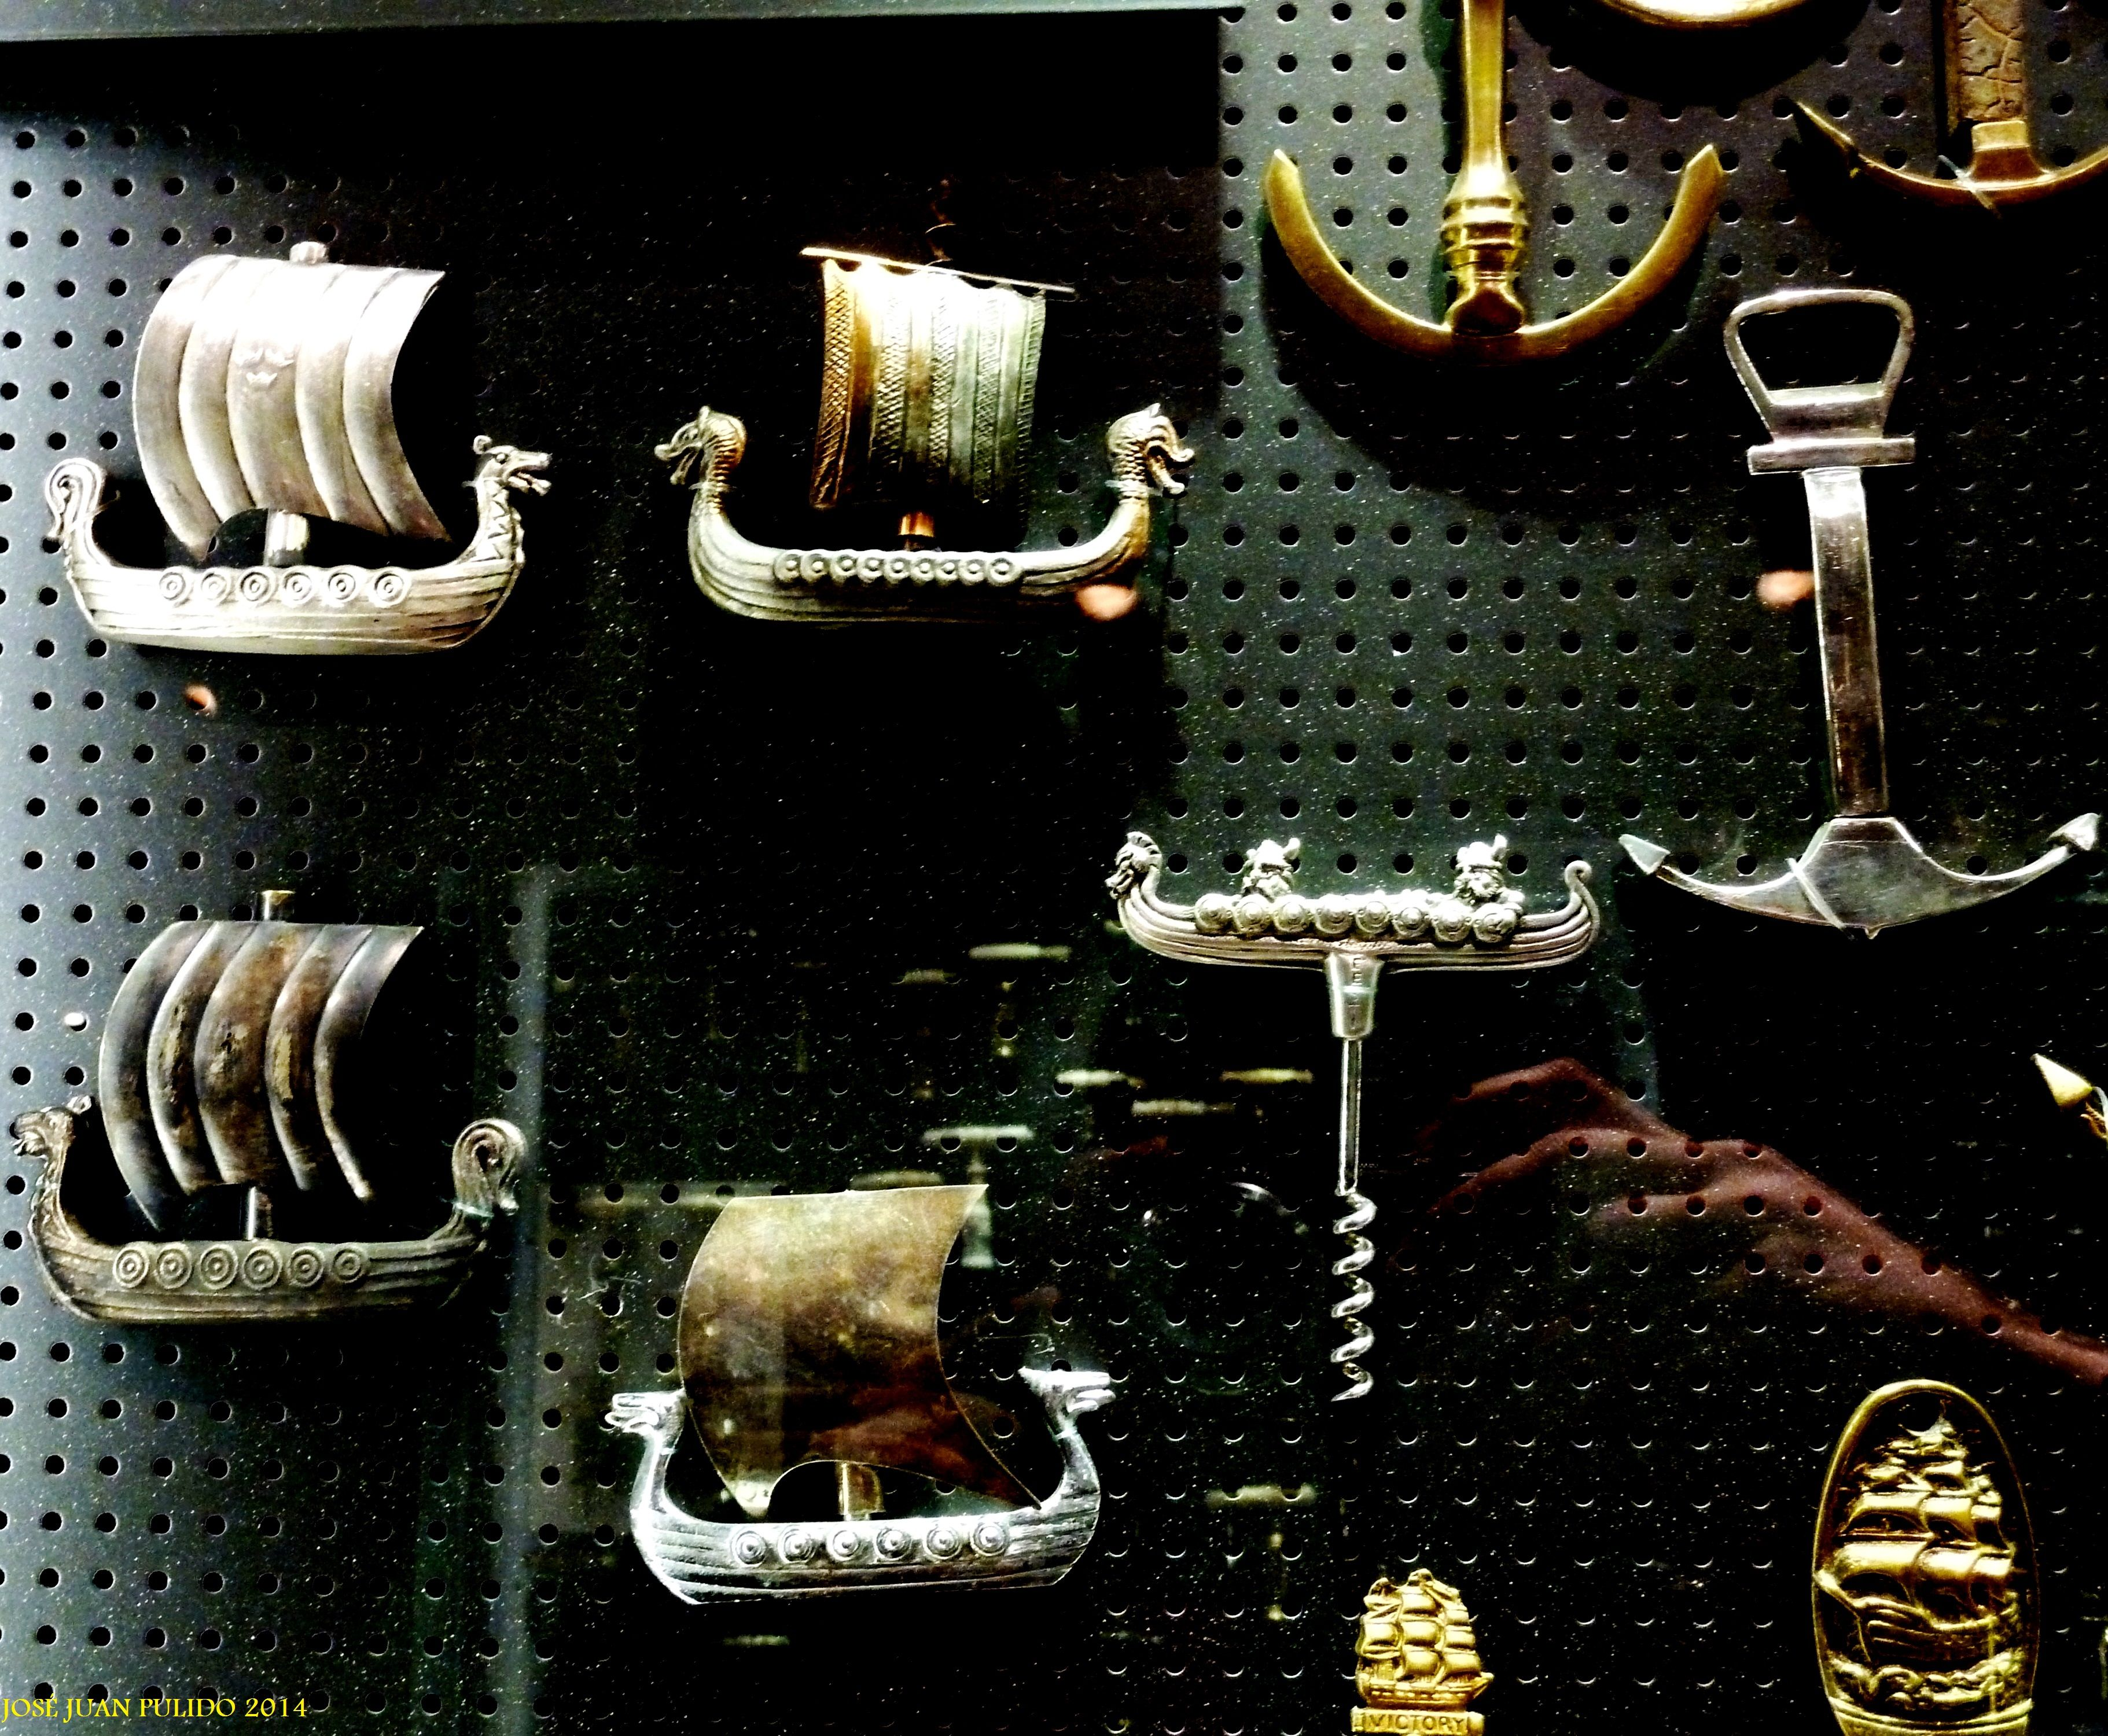 naves antiguas y anclas. Ancient ships and achors